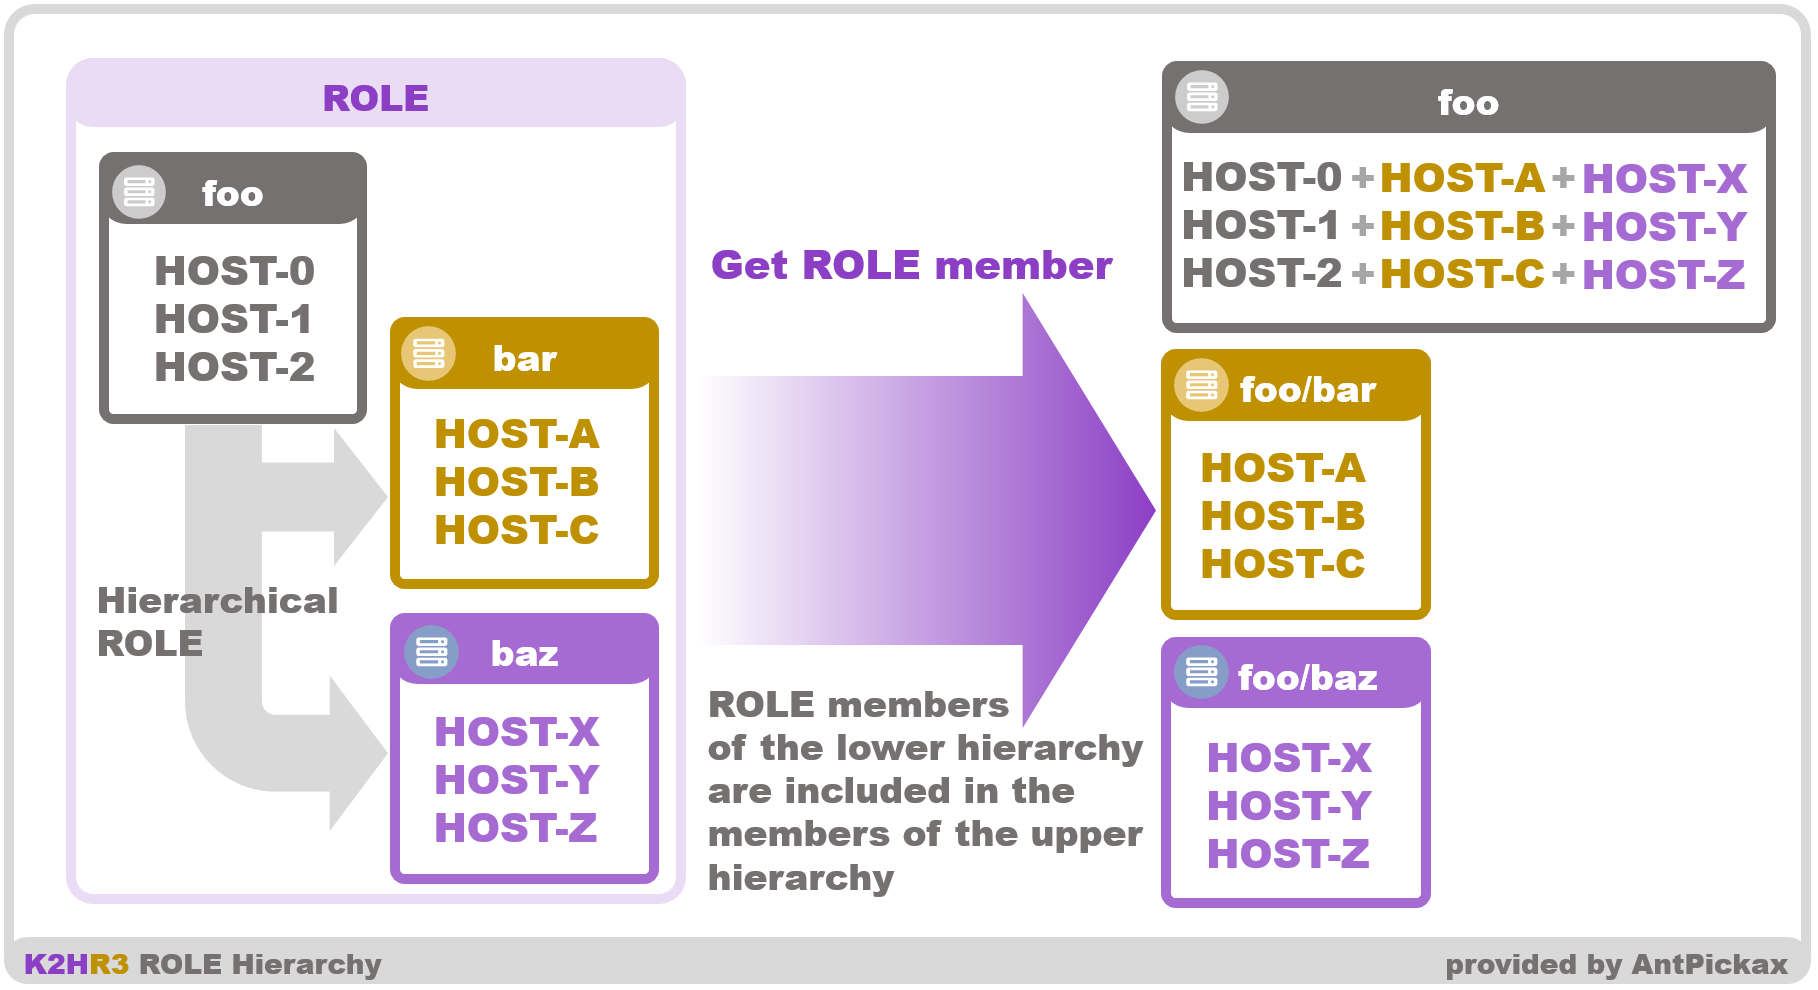 K2HR3 Usage - Role hierarchy